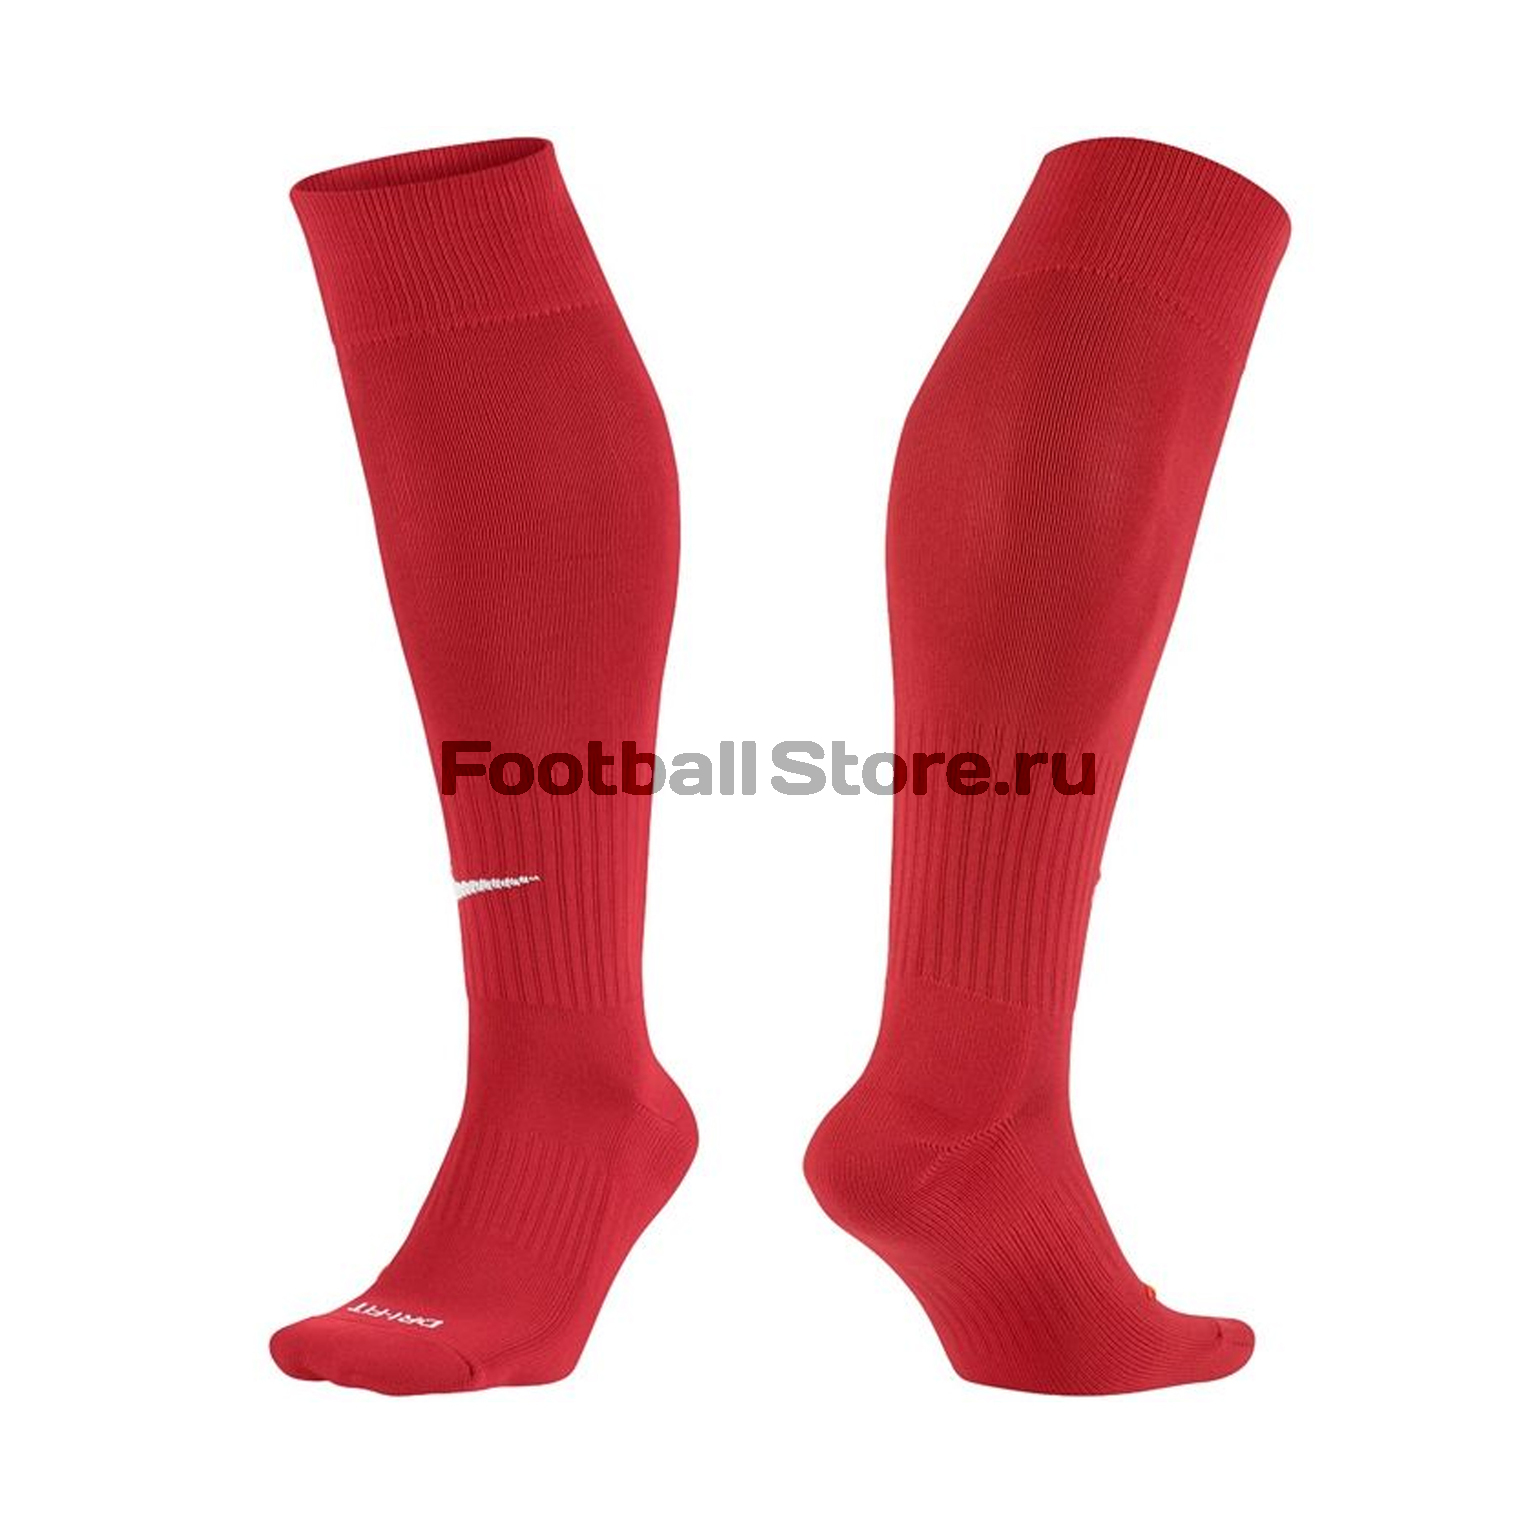 Гетры Nike Classic Football Fit-Dri SX4120-601 теннисный инвентарь nike dri fit singlewide red white 2015